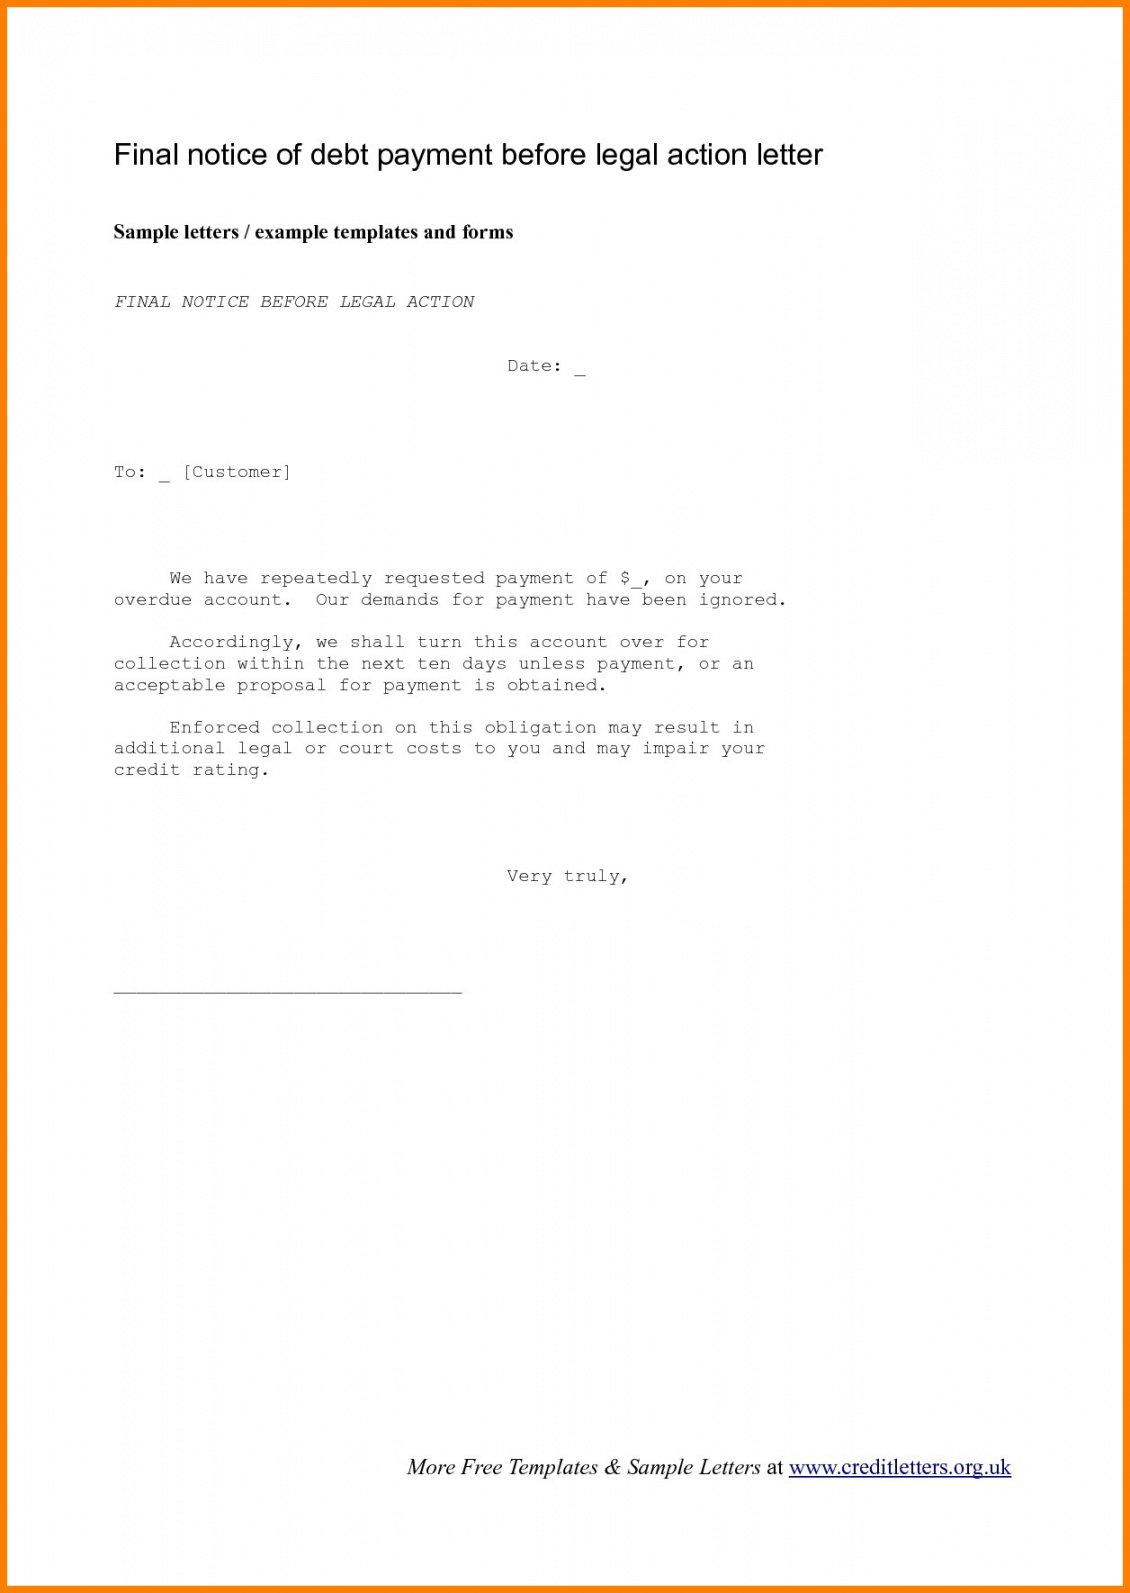 Final Notice Letter Before Legal Action from cashbackdiscountrealestate.com